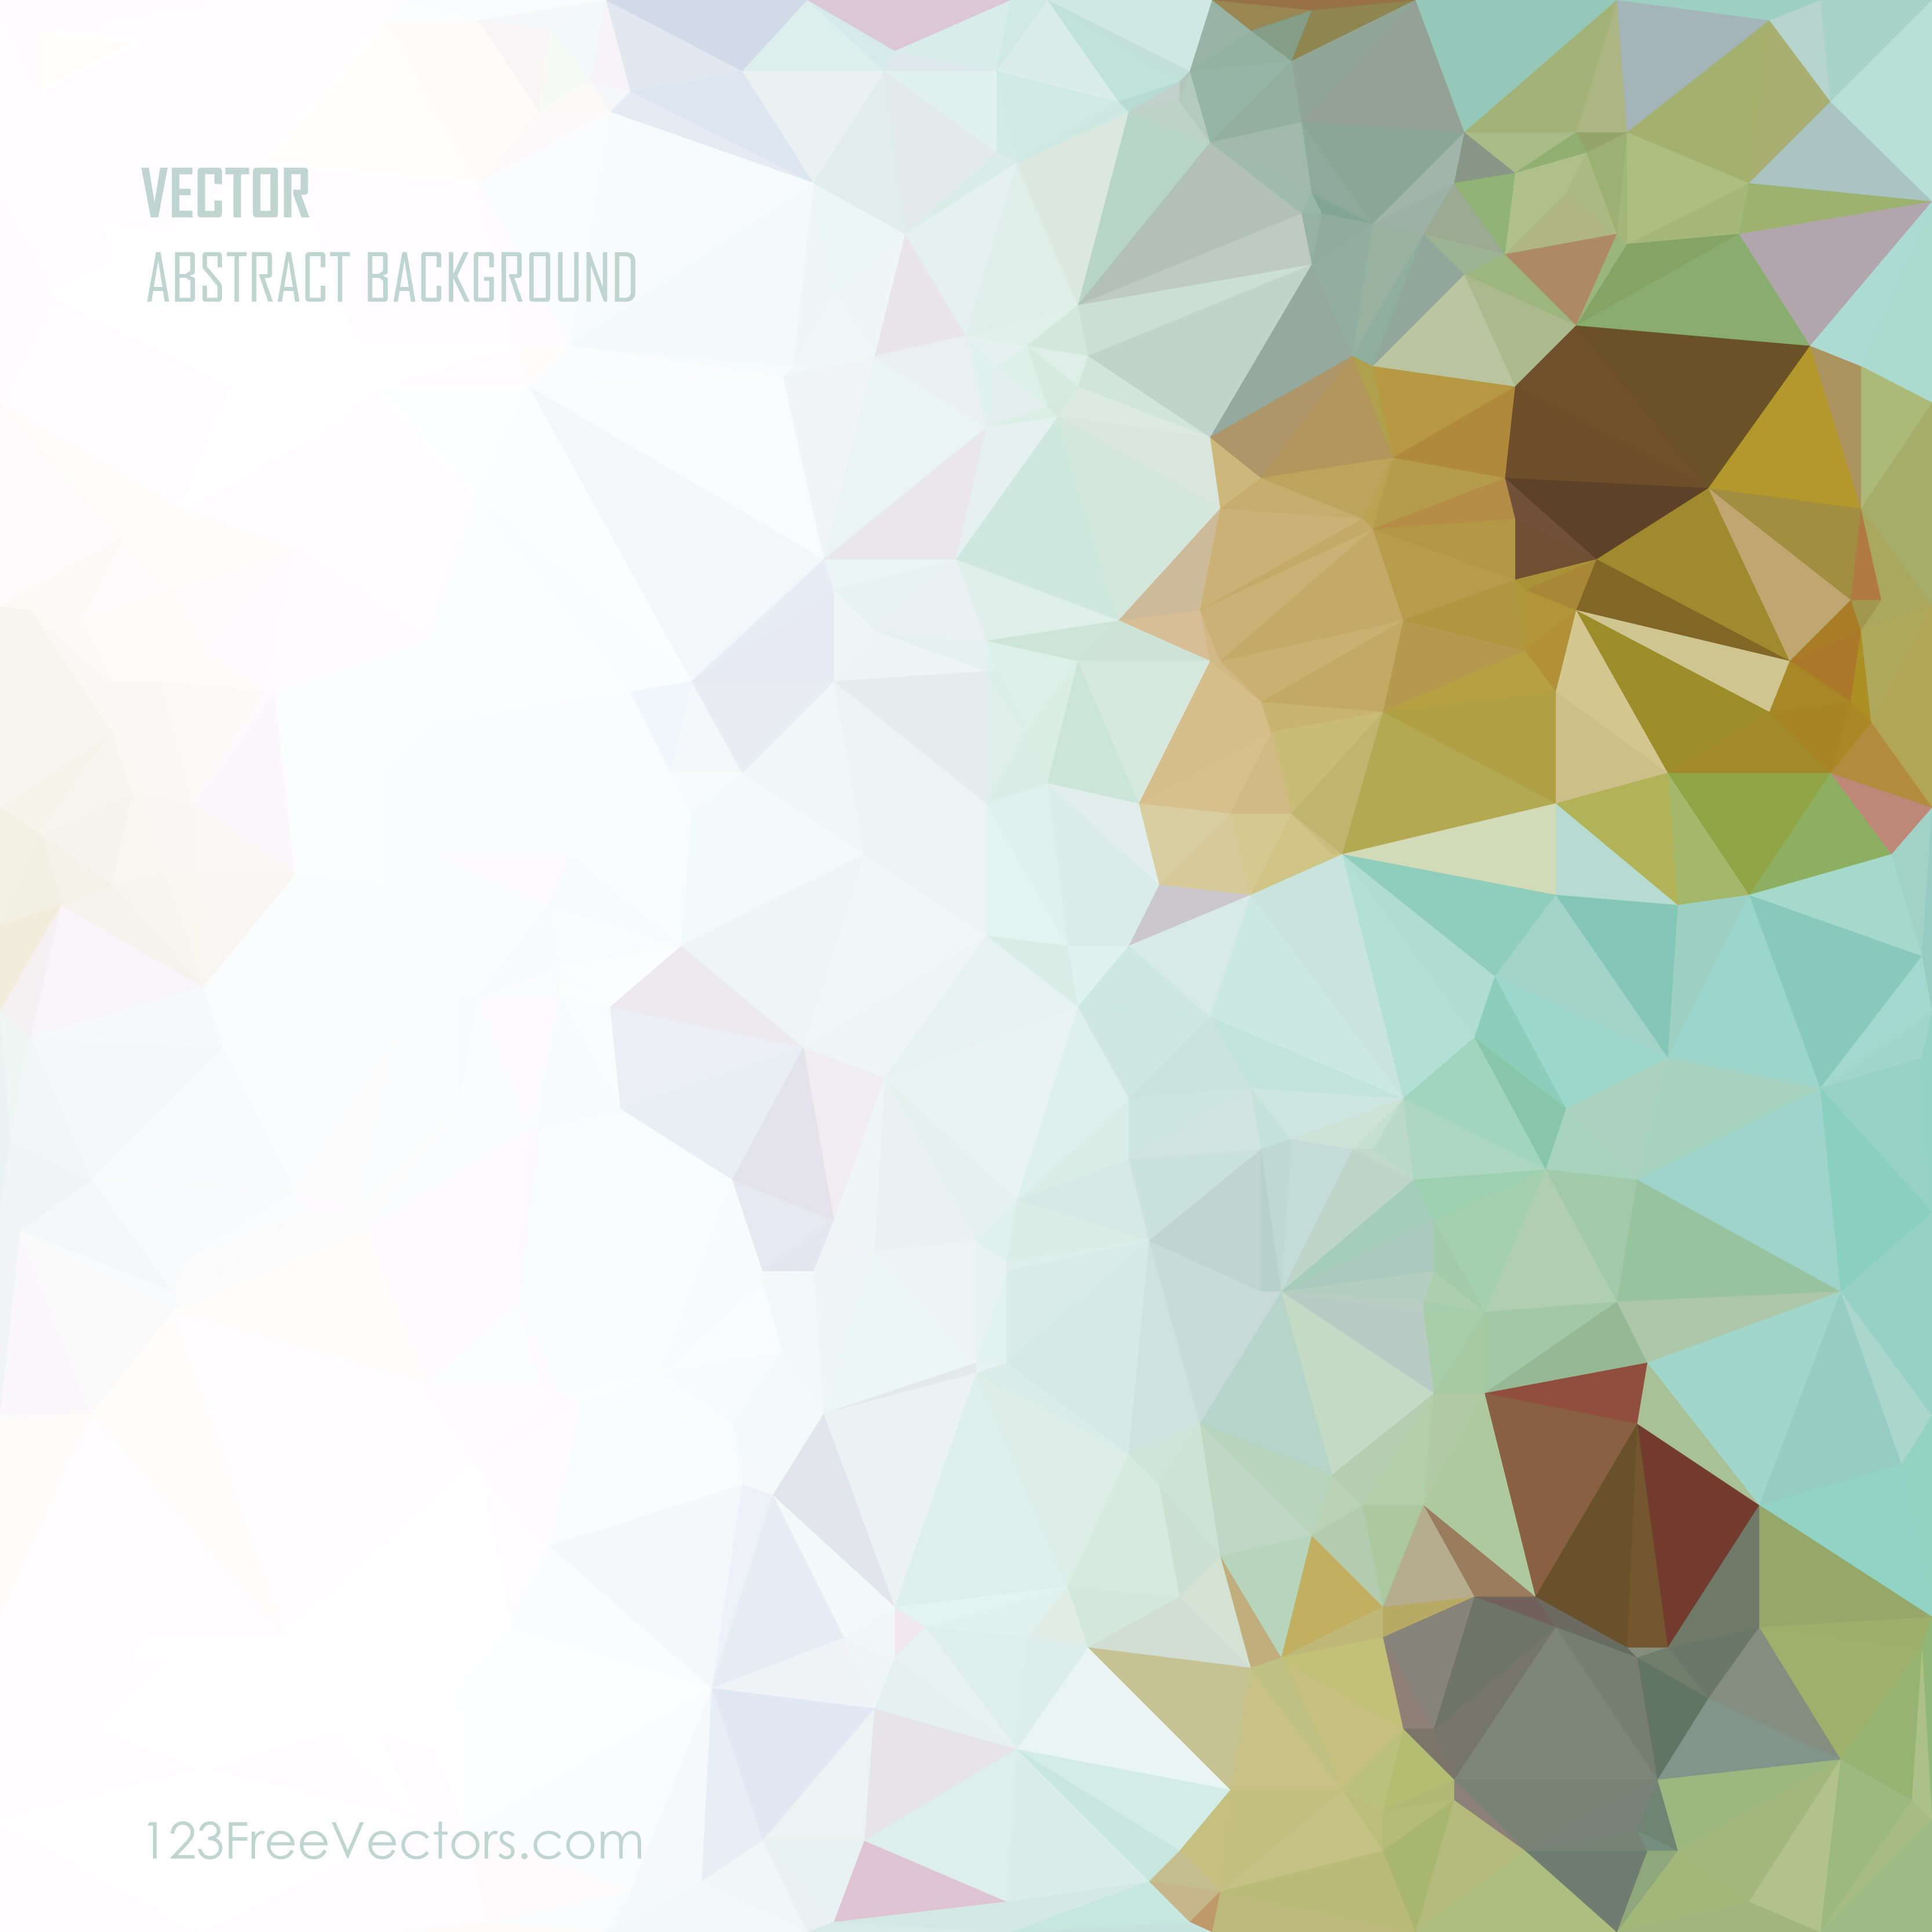 Colorful Abstract Geometric Polygon Background Illustrator